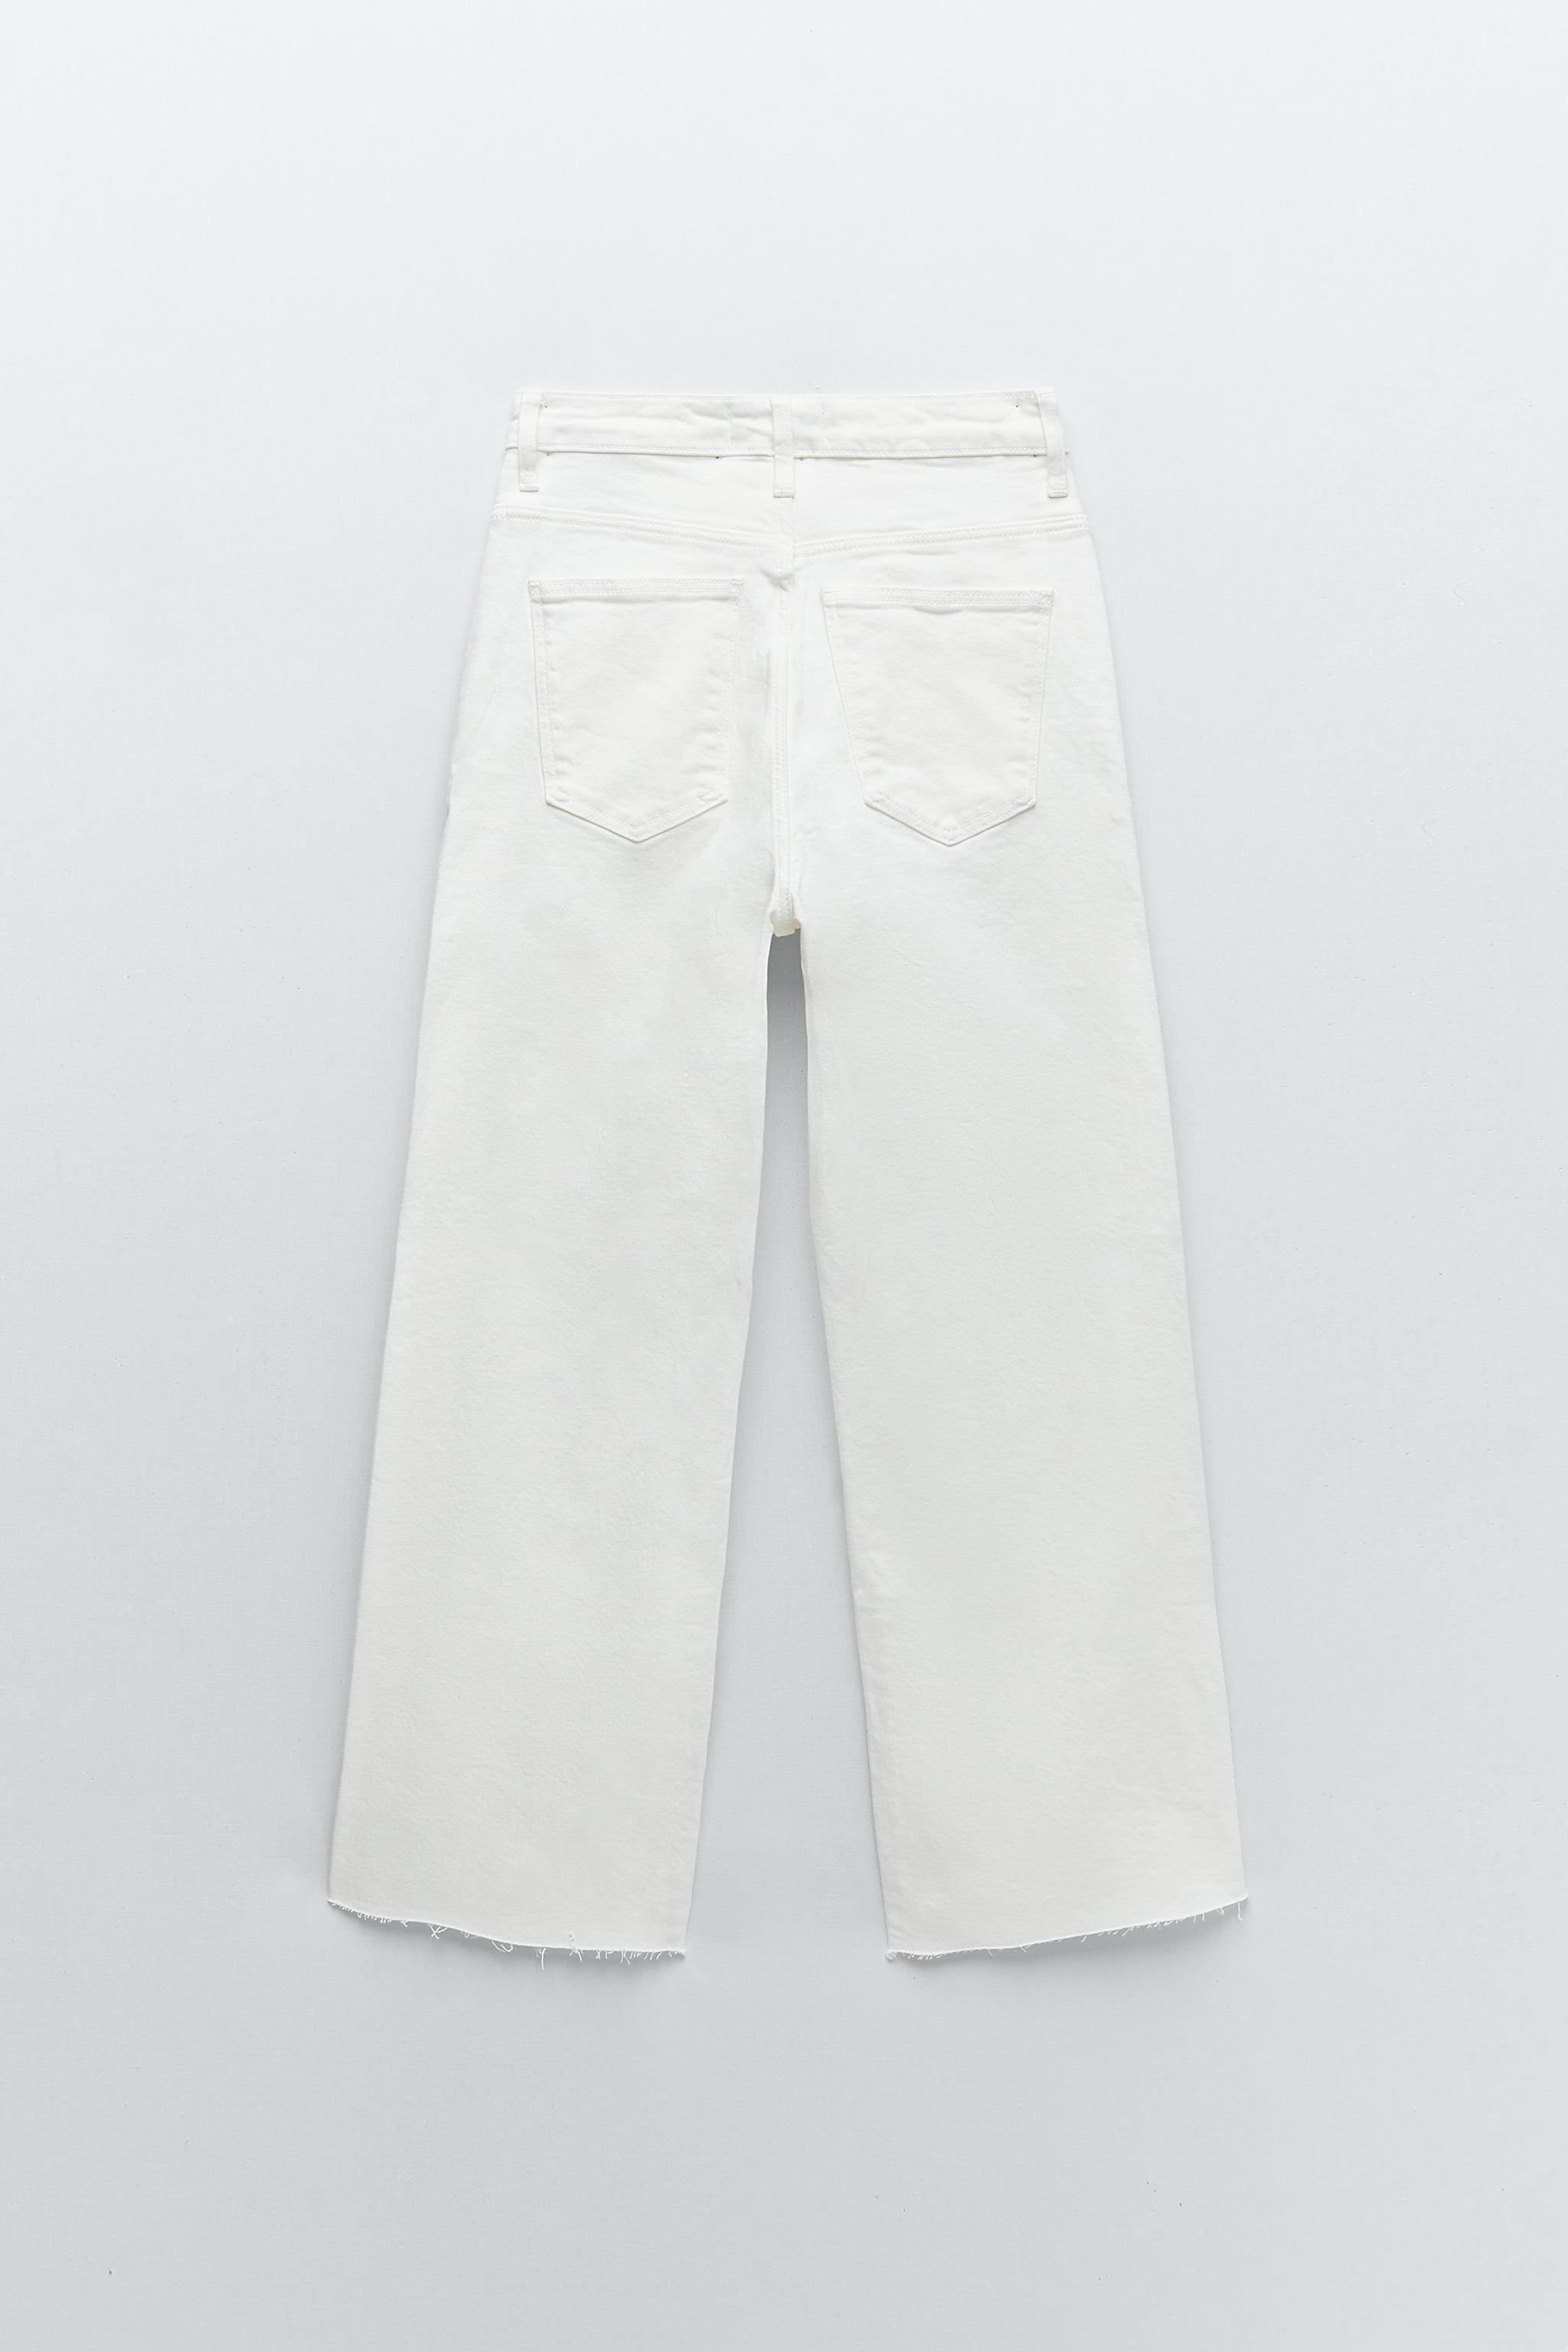 ZW THE HIGH WAIST CULOTTES JEANS 6